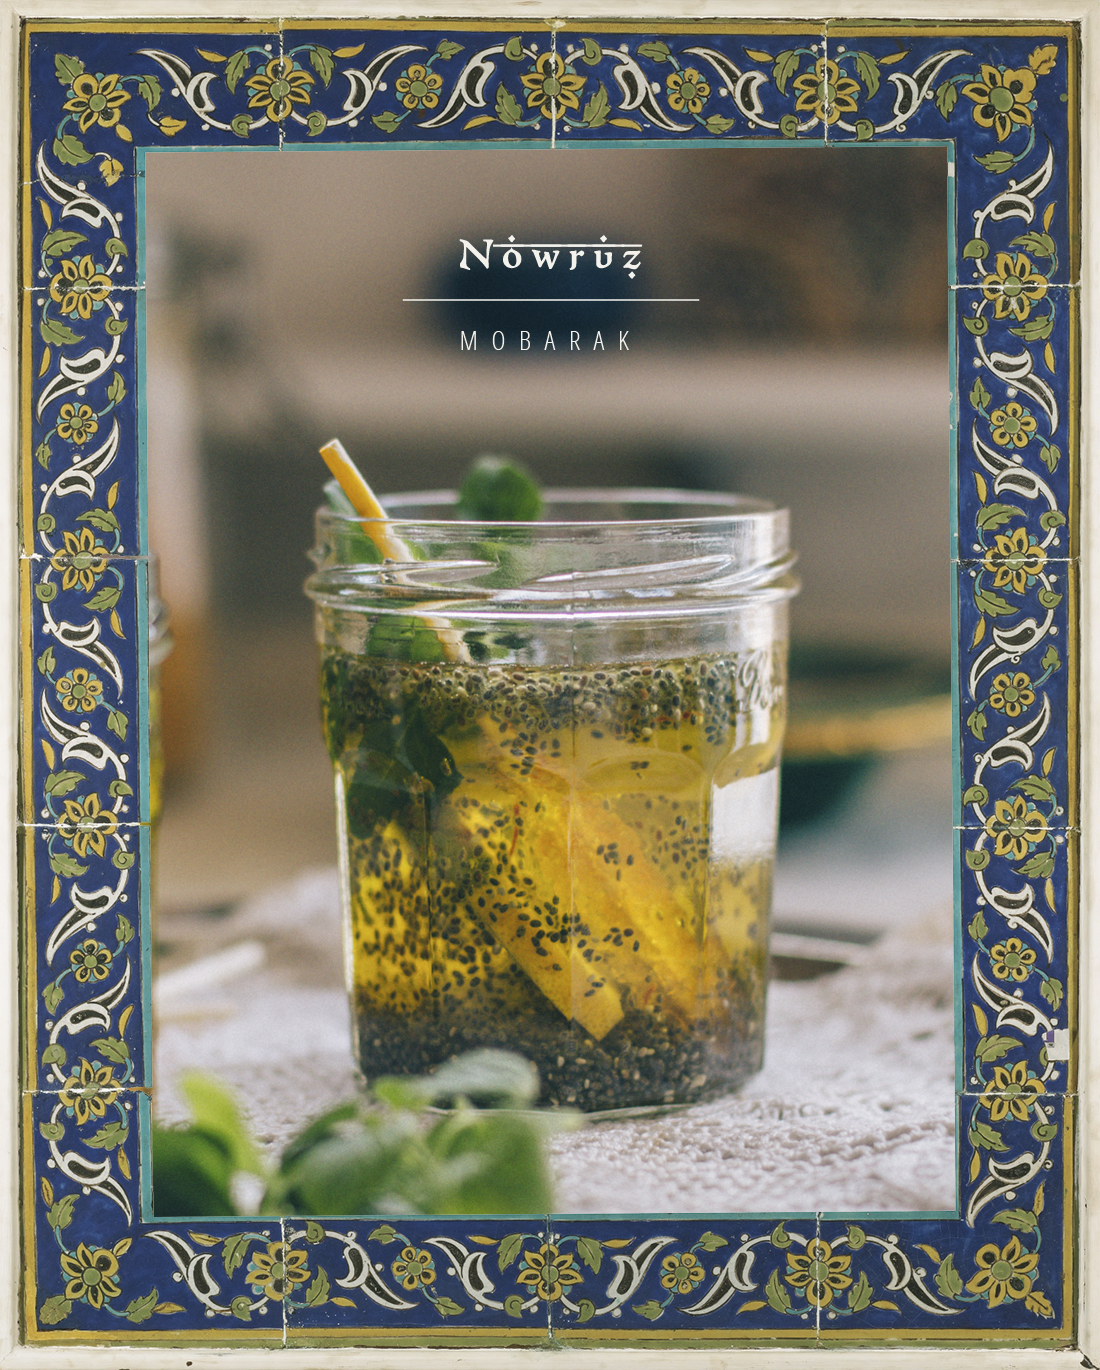 Persian Chia Seeds Drink for Nowruz | Bevanda di Semi di Chia alla Persiana per Nowruz | Lab Noon #PFBNowruz framed text